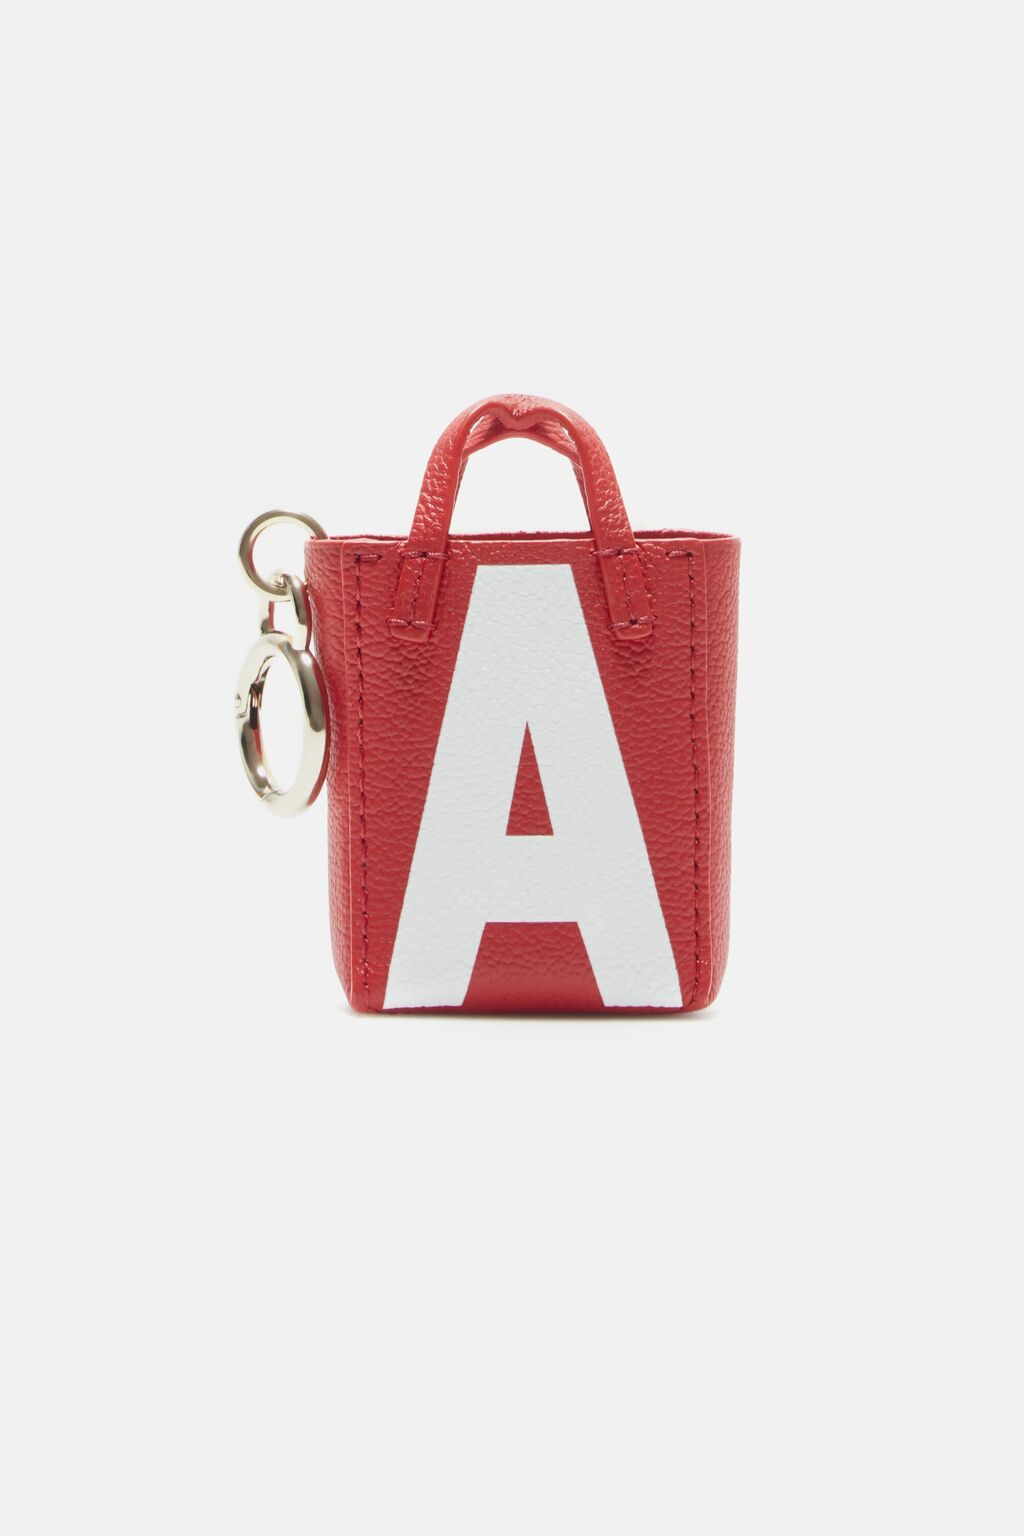 Letter A tote bag charm